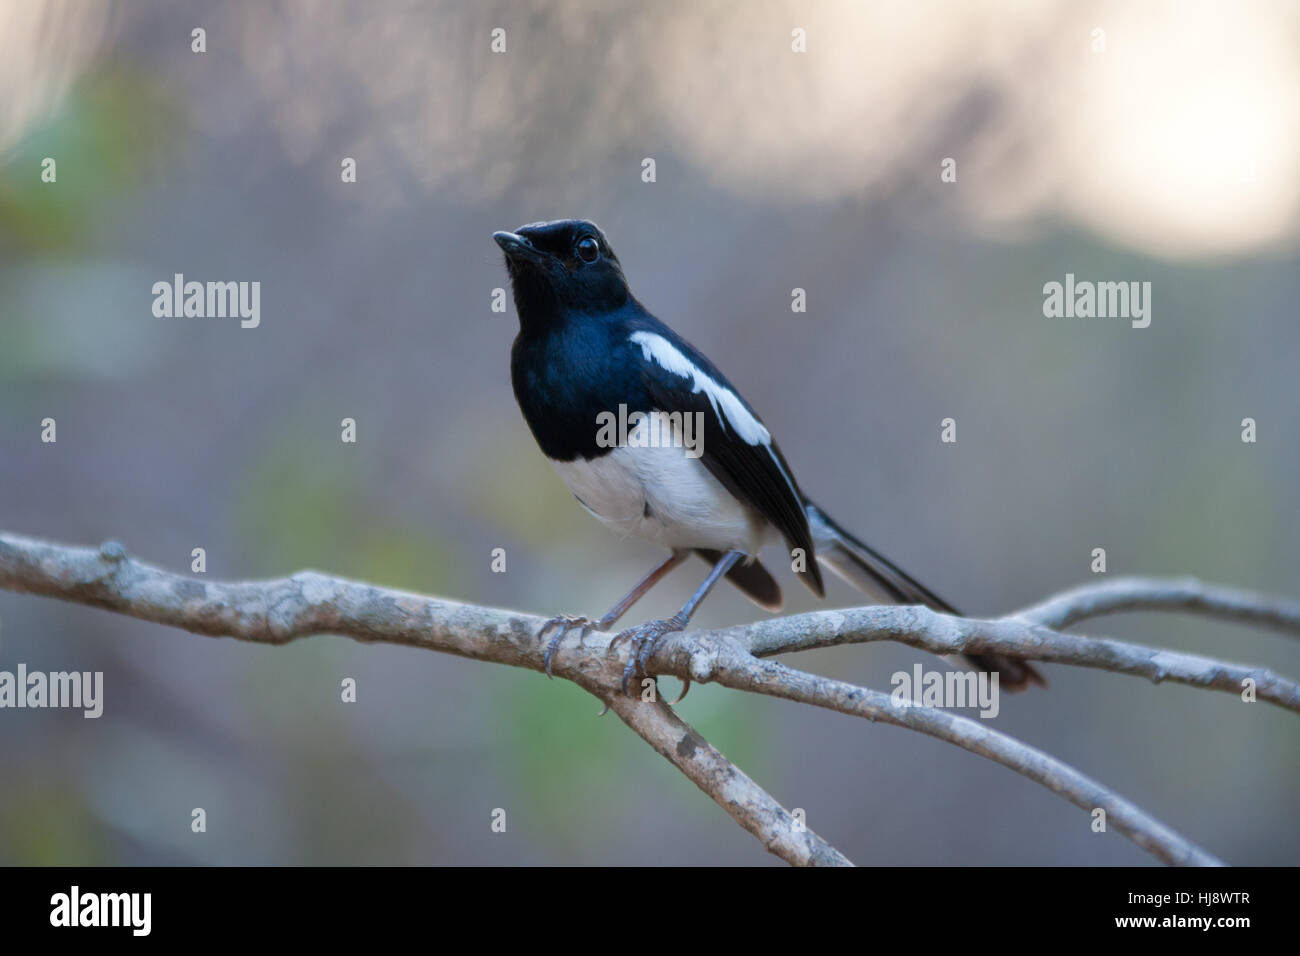 Madagascan Magpie-robin (Copsychus albospecularis) perched on a branch - Stock Image